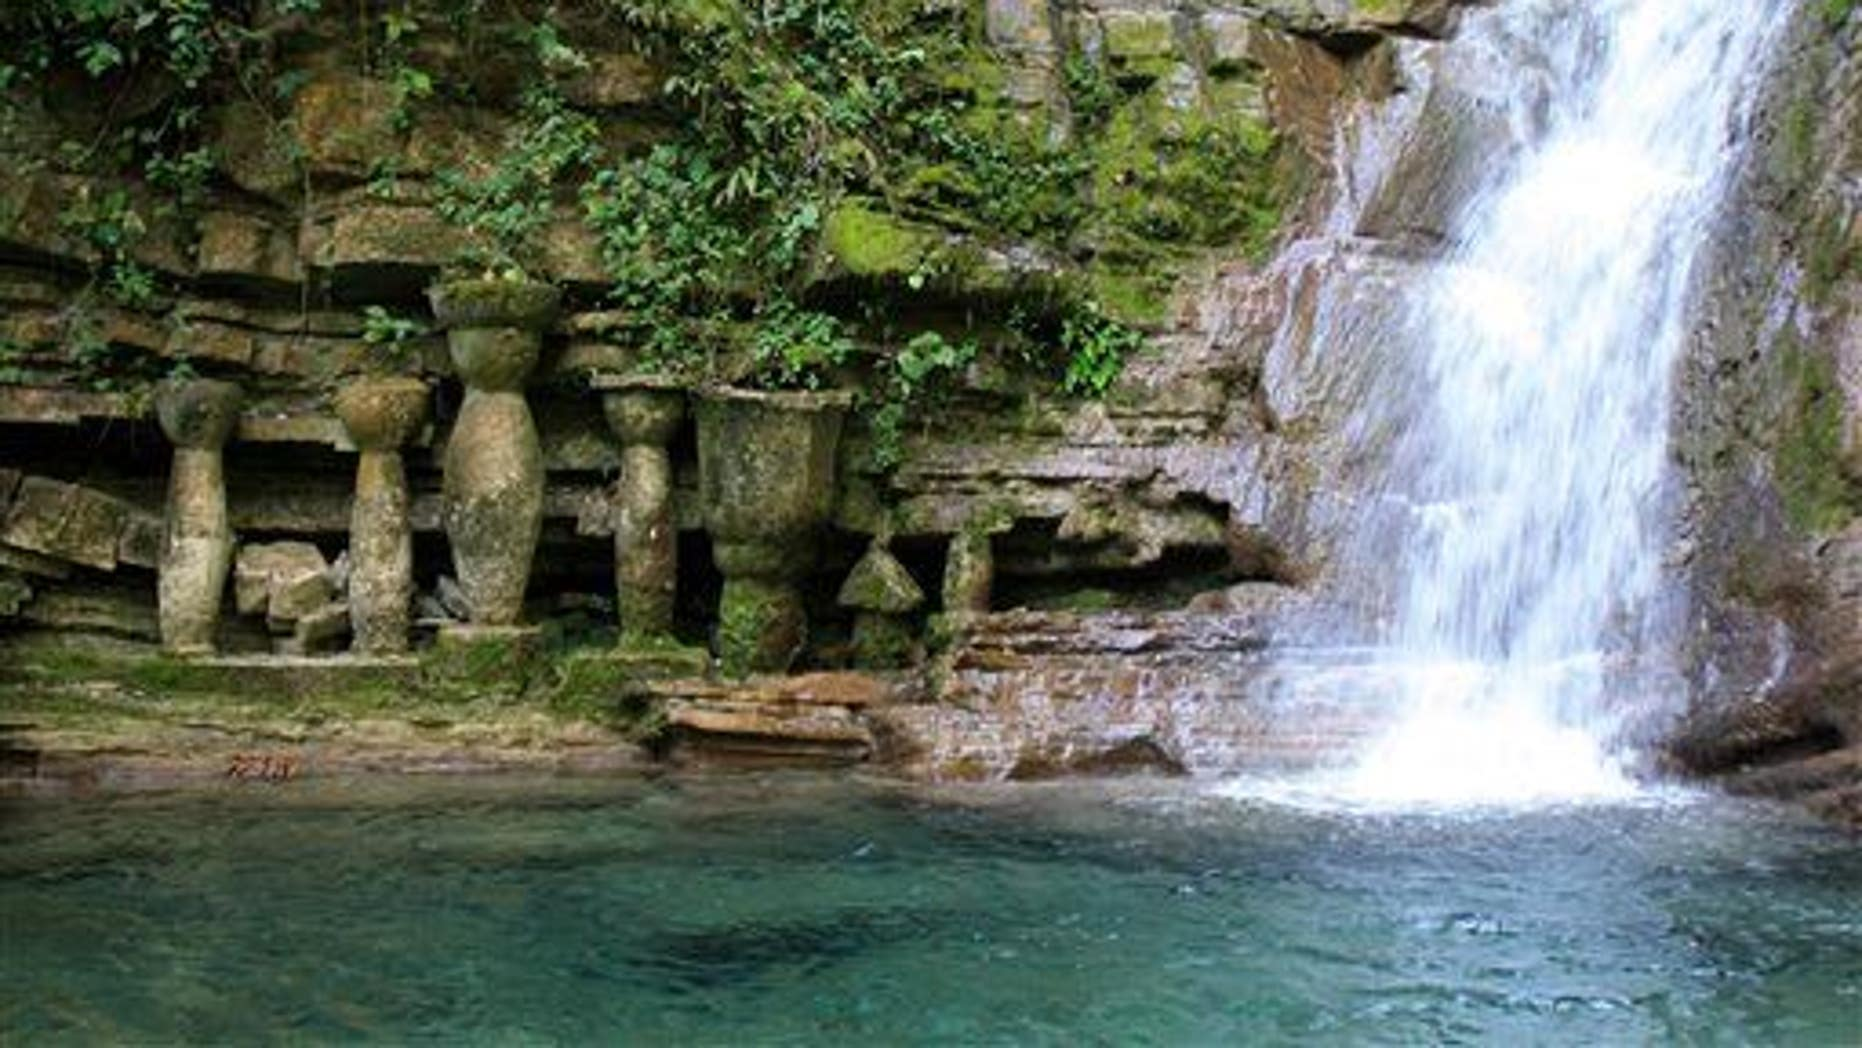 Listen to the sounds of a waterfall like this one in a jungle in northeast Mexico.